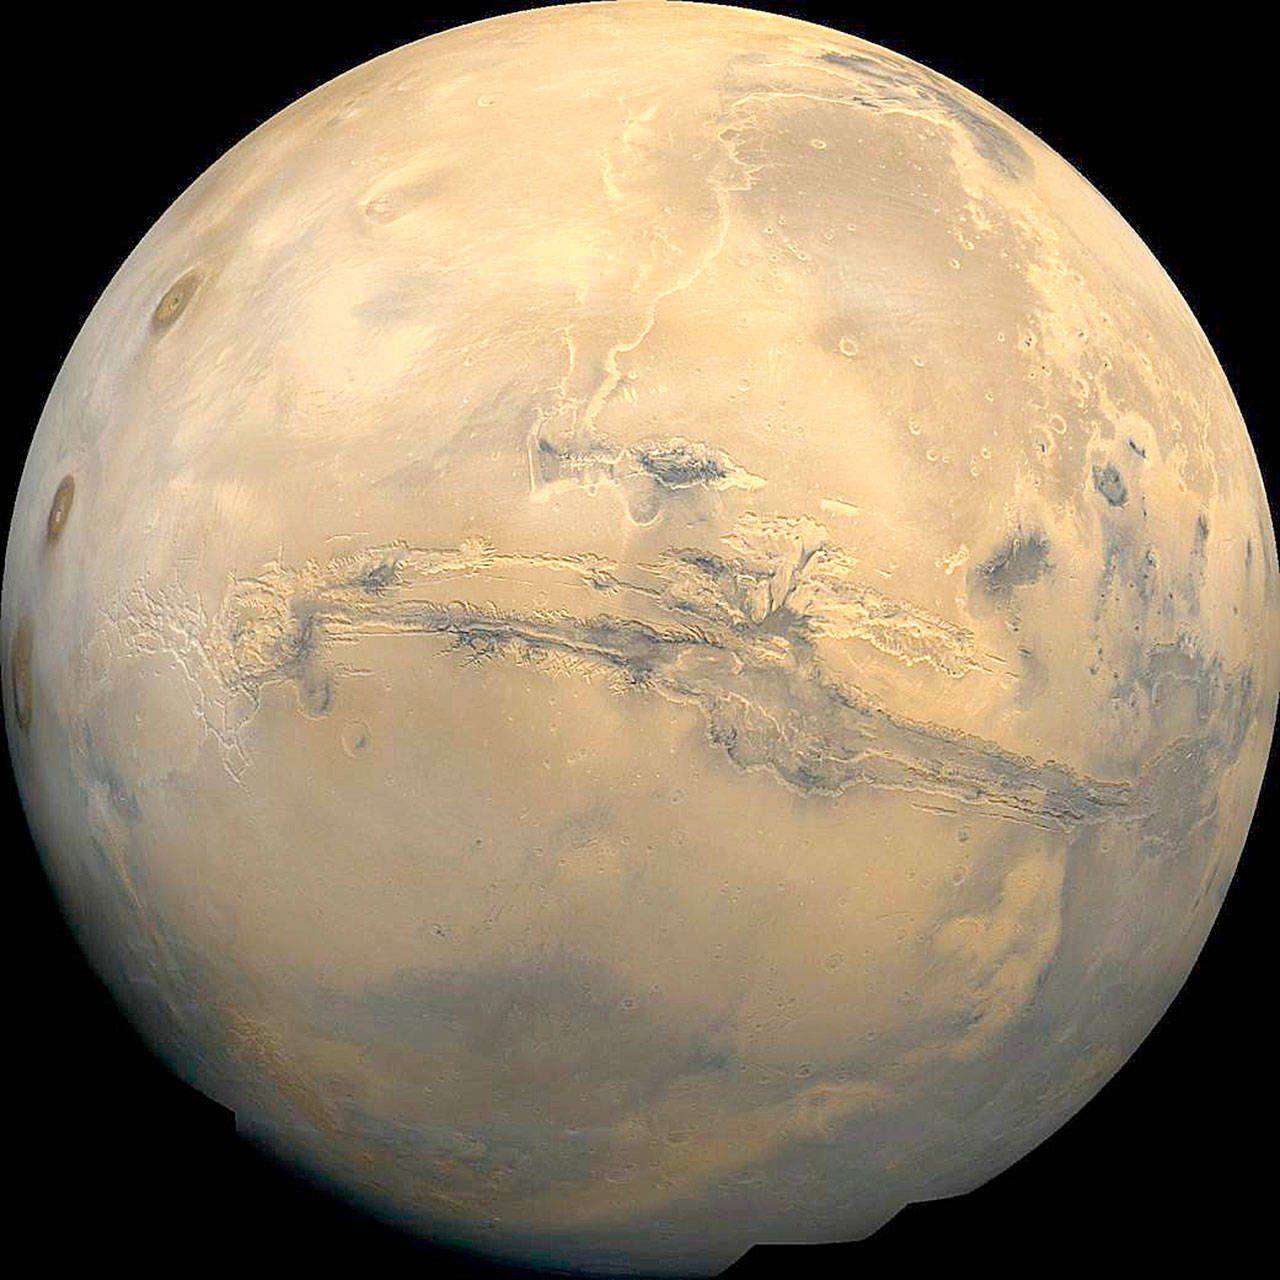 Planetary scientists say a new analysis of data shows that thick ice sheets hide just below parts of the surface of Mars. (NASA)